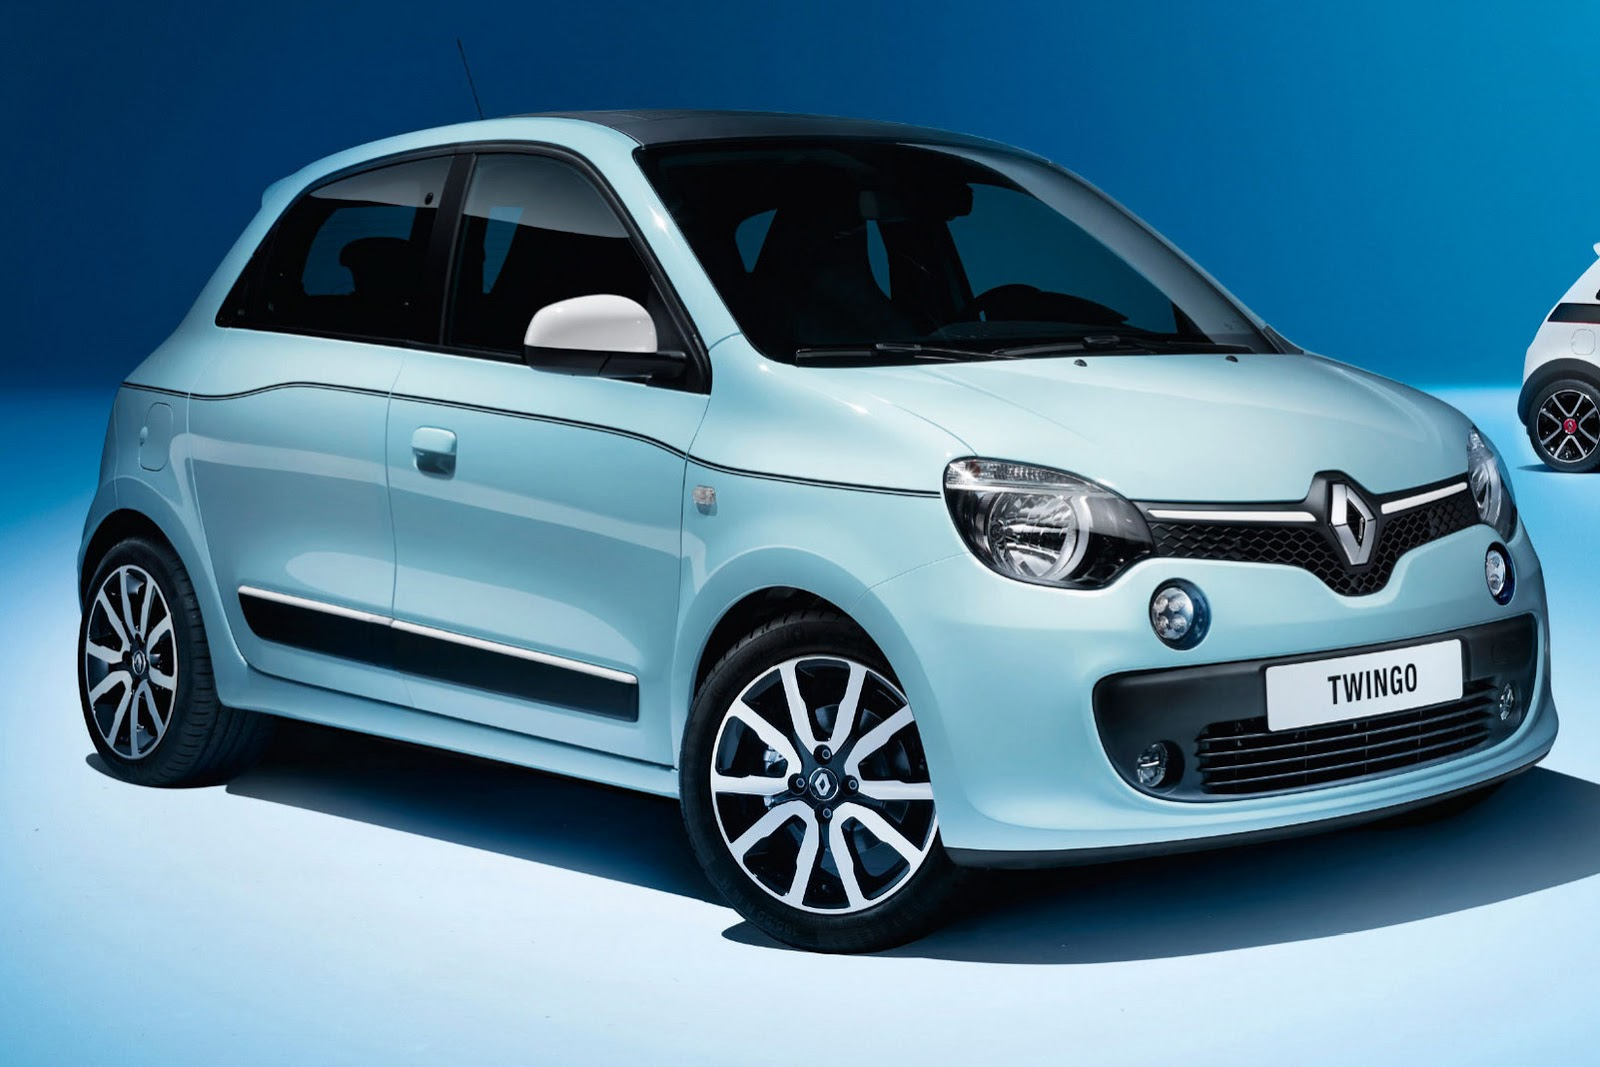 hight resolution of twingo133net the twingo owners club forum o view topic wiringrenault twingo wiring diagram wiring library all new renault twingo with rear drive setup and